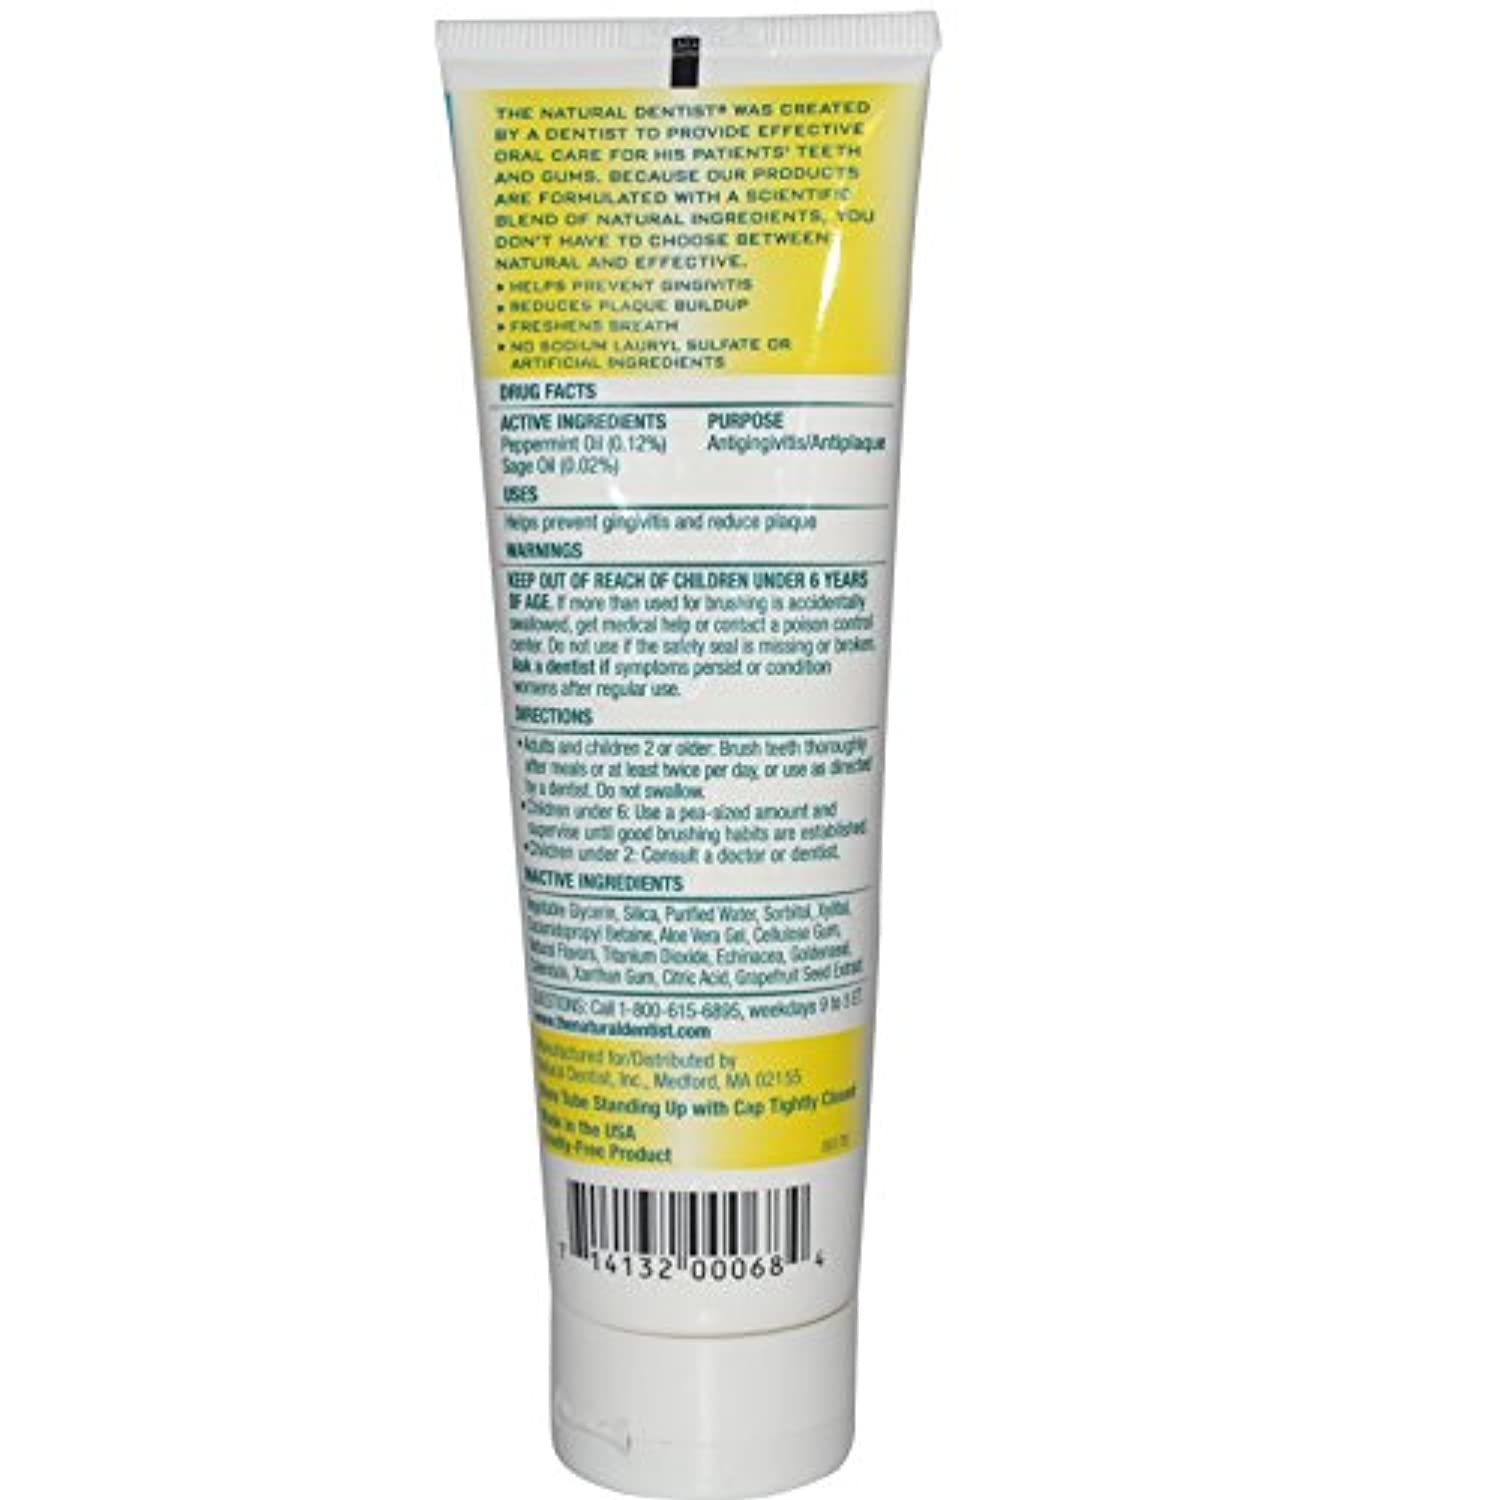 Fluoride Free Toothpaste Pepperrmint Sage - 5 oz by Natural Dentist